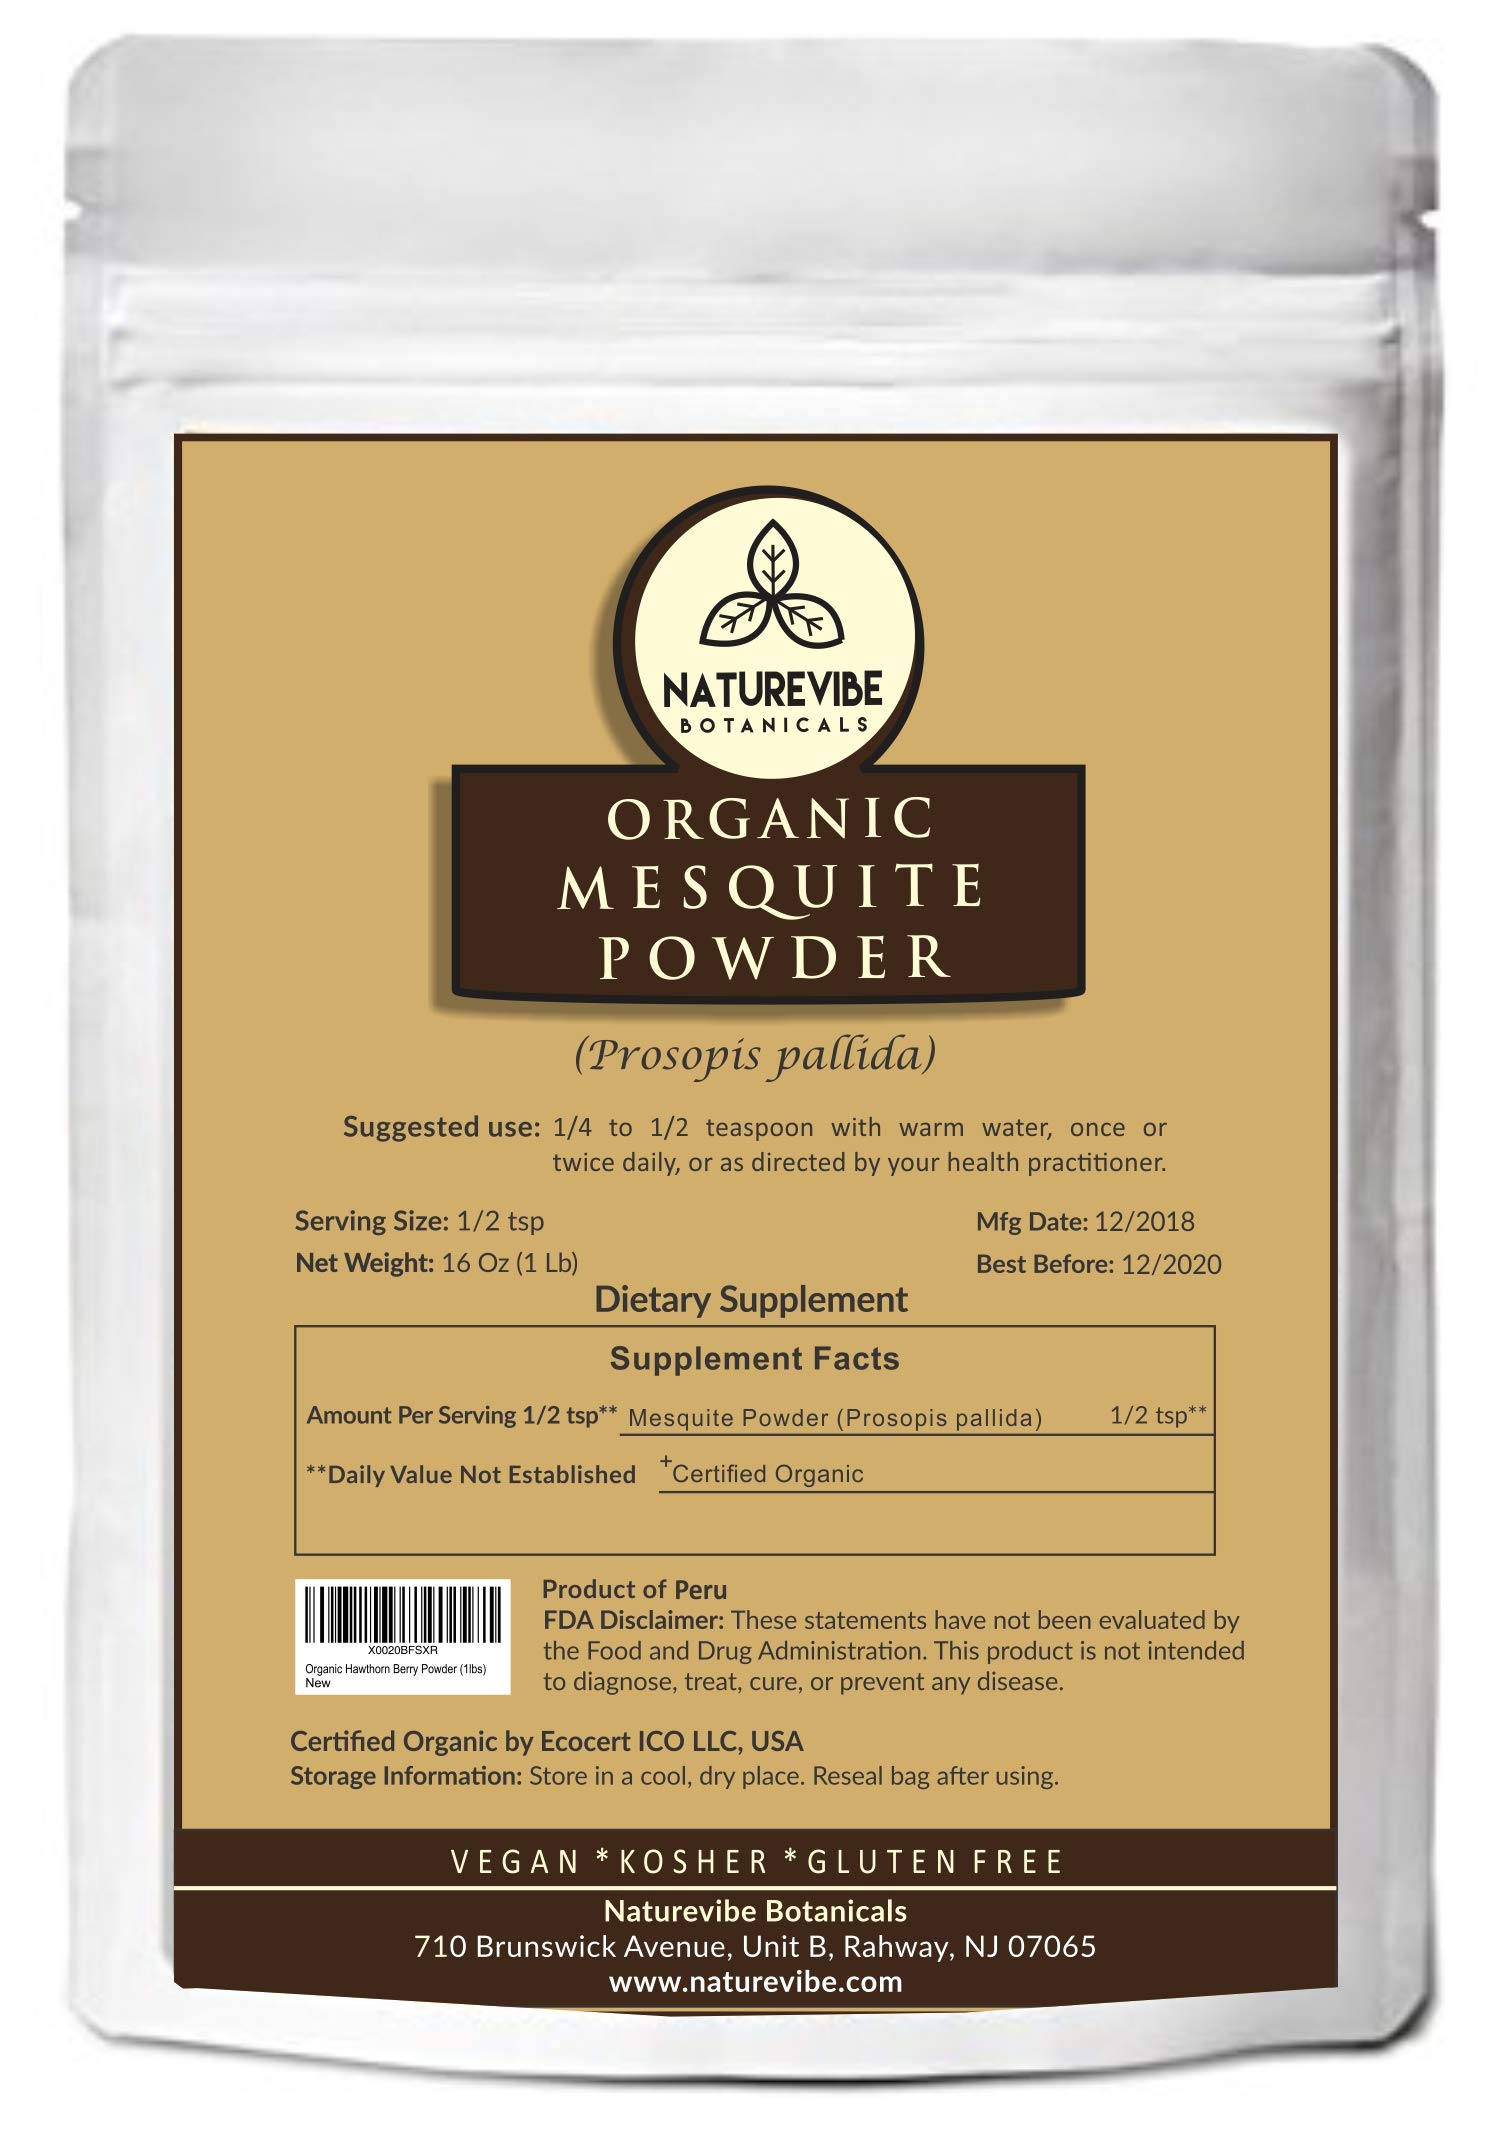 Naturevibe Botanicals Organic Mesquite Powder (1lbs), Prosopis pallida | Gluten Free & Non GMO | Rich in Protein | Helps Boost Immune System.… by Naturevibe Botanicals (Image #1)